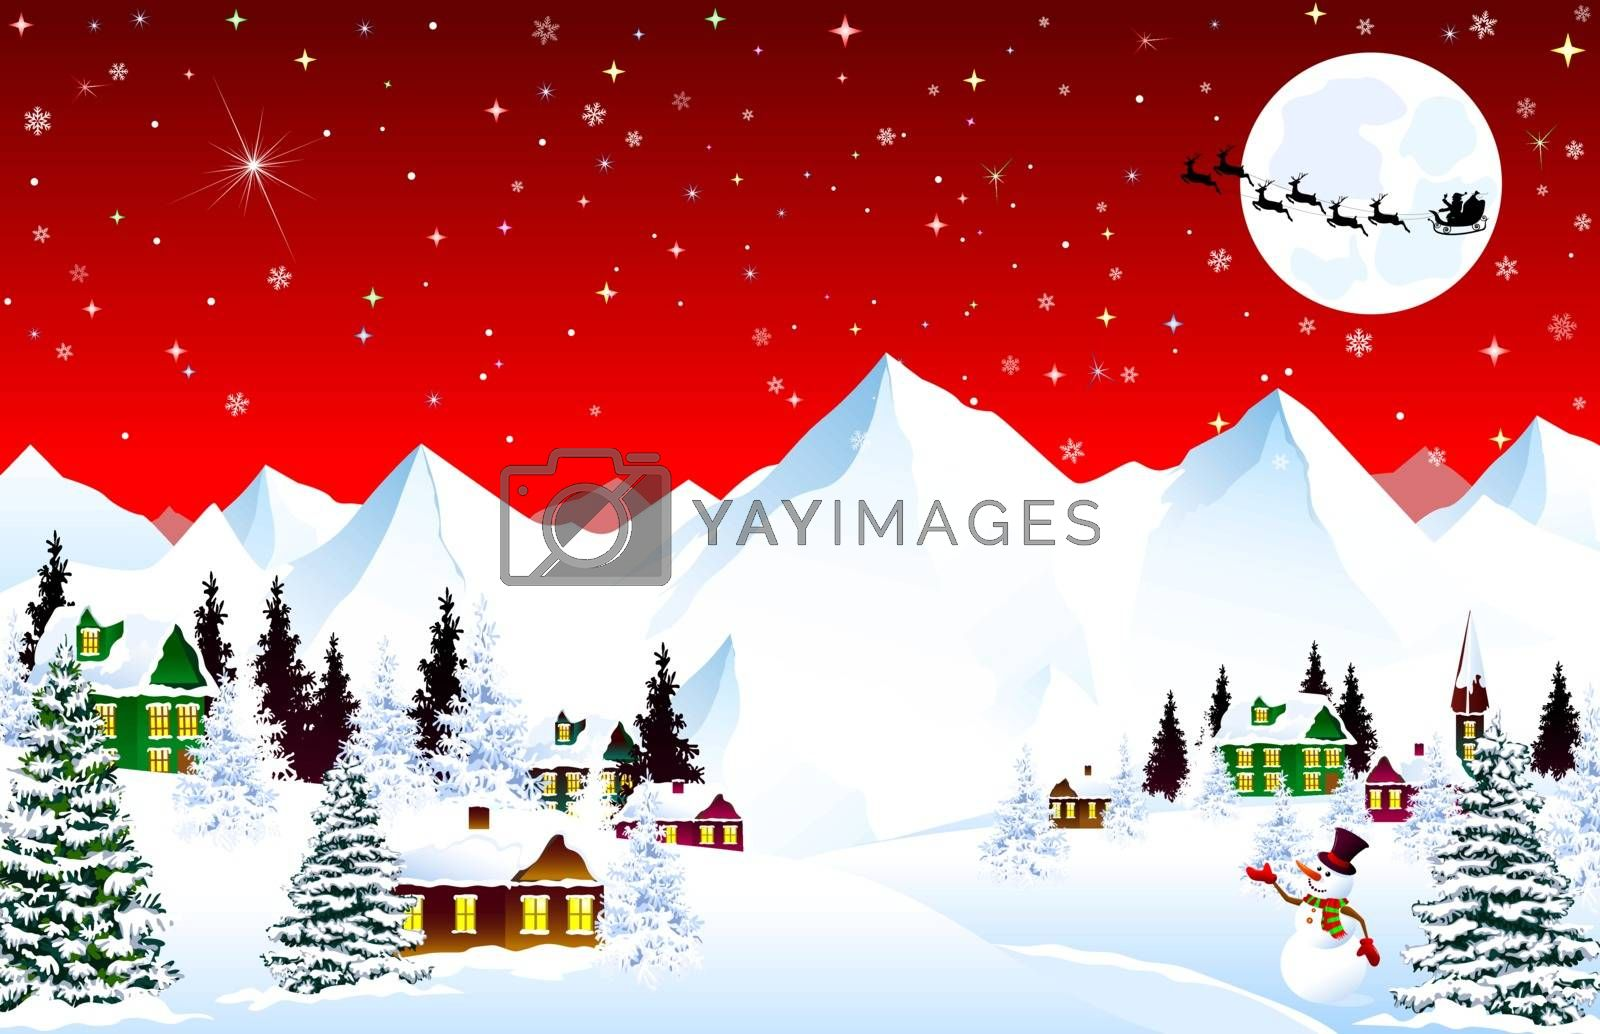 Winter rural landscape. Christmas Eve Night. Mountain village. Snow, forest, mountains. Shining stars and snowflakes in the night sky. Santa on a sleigh against the background of the moon. Christmas winter night scene.